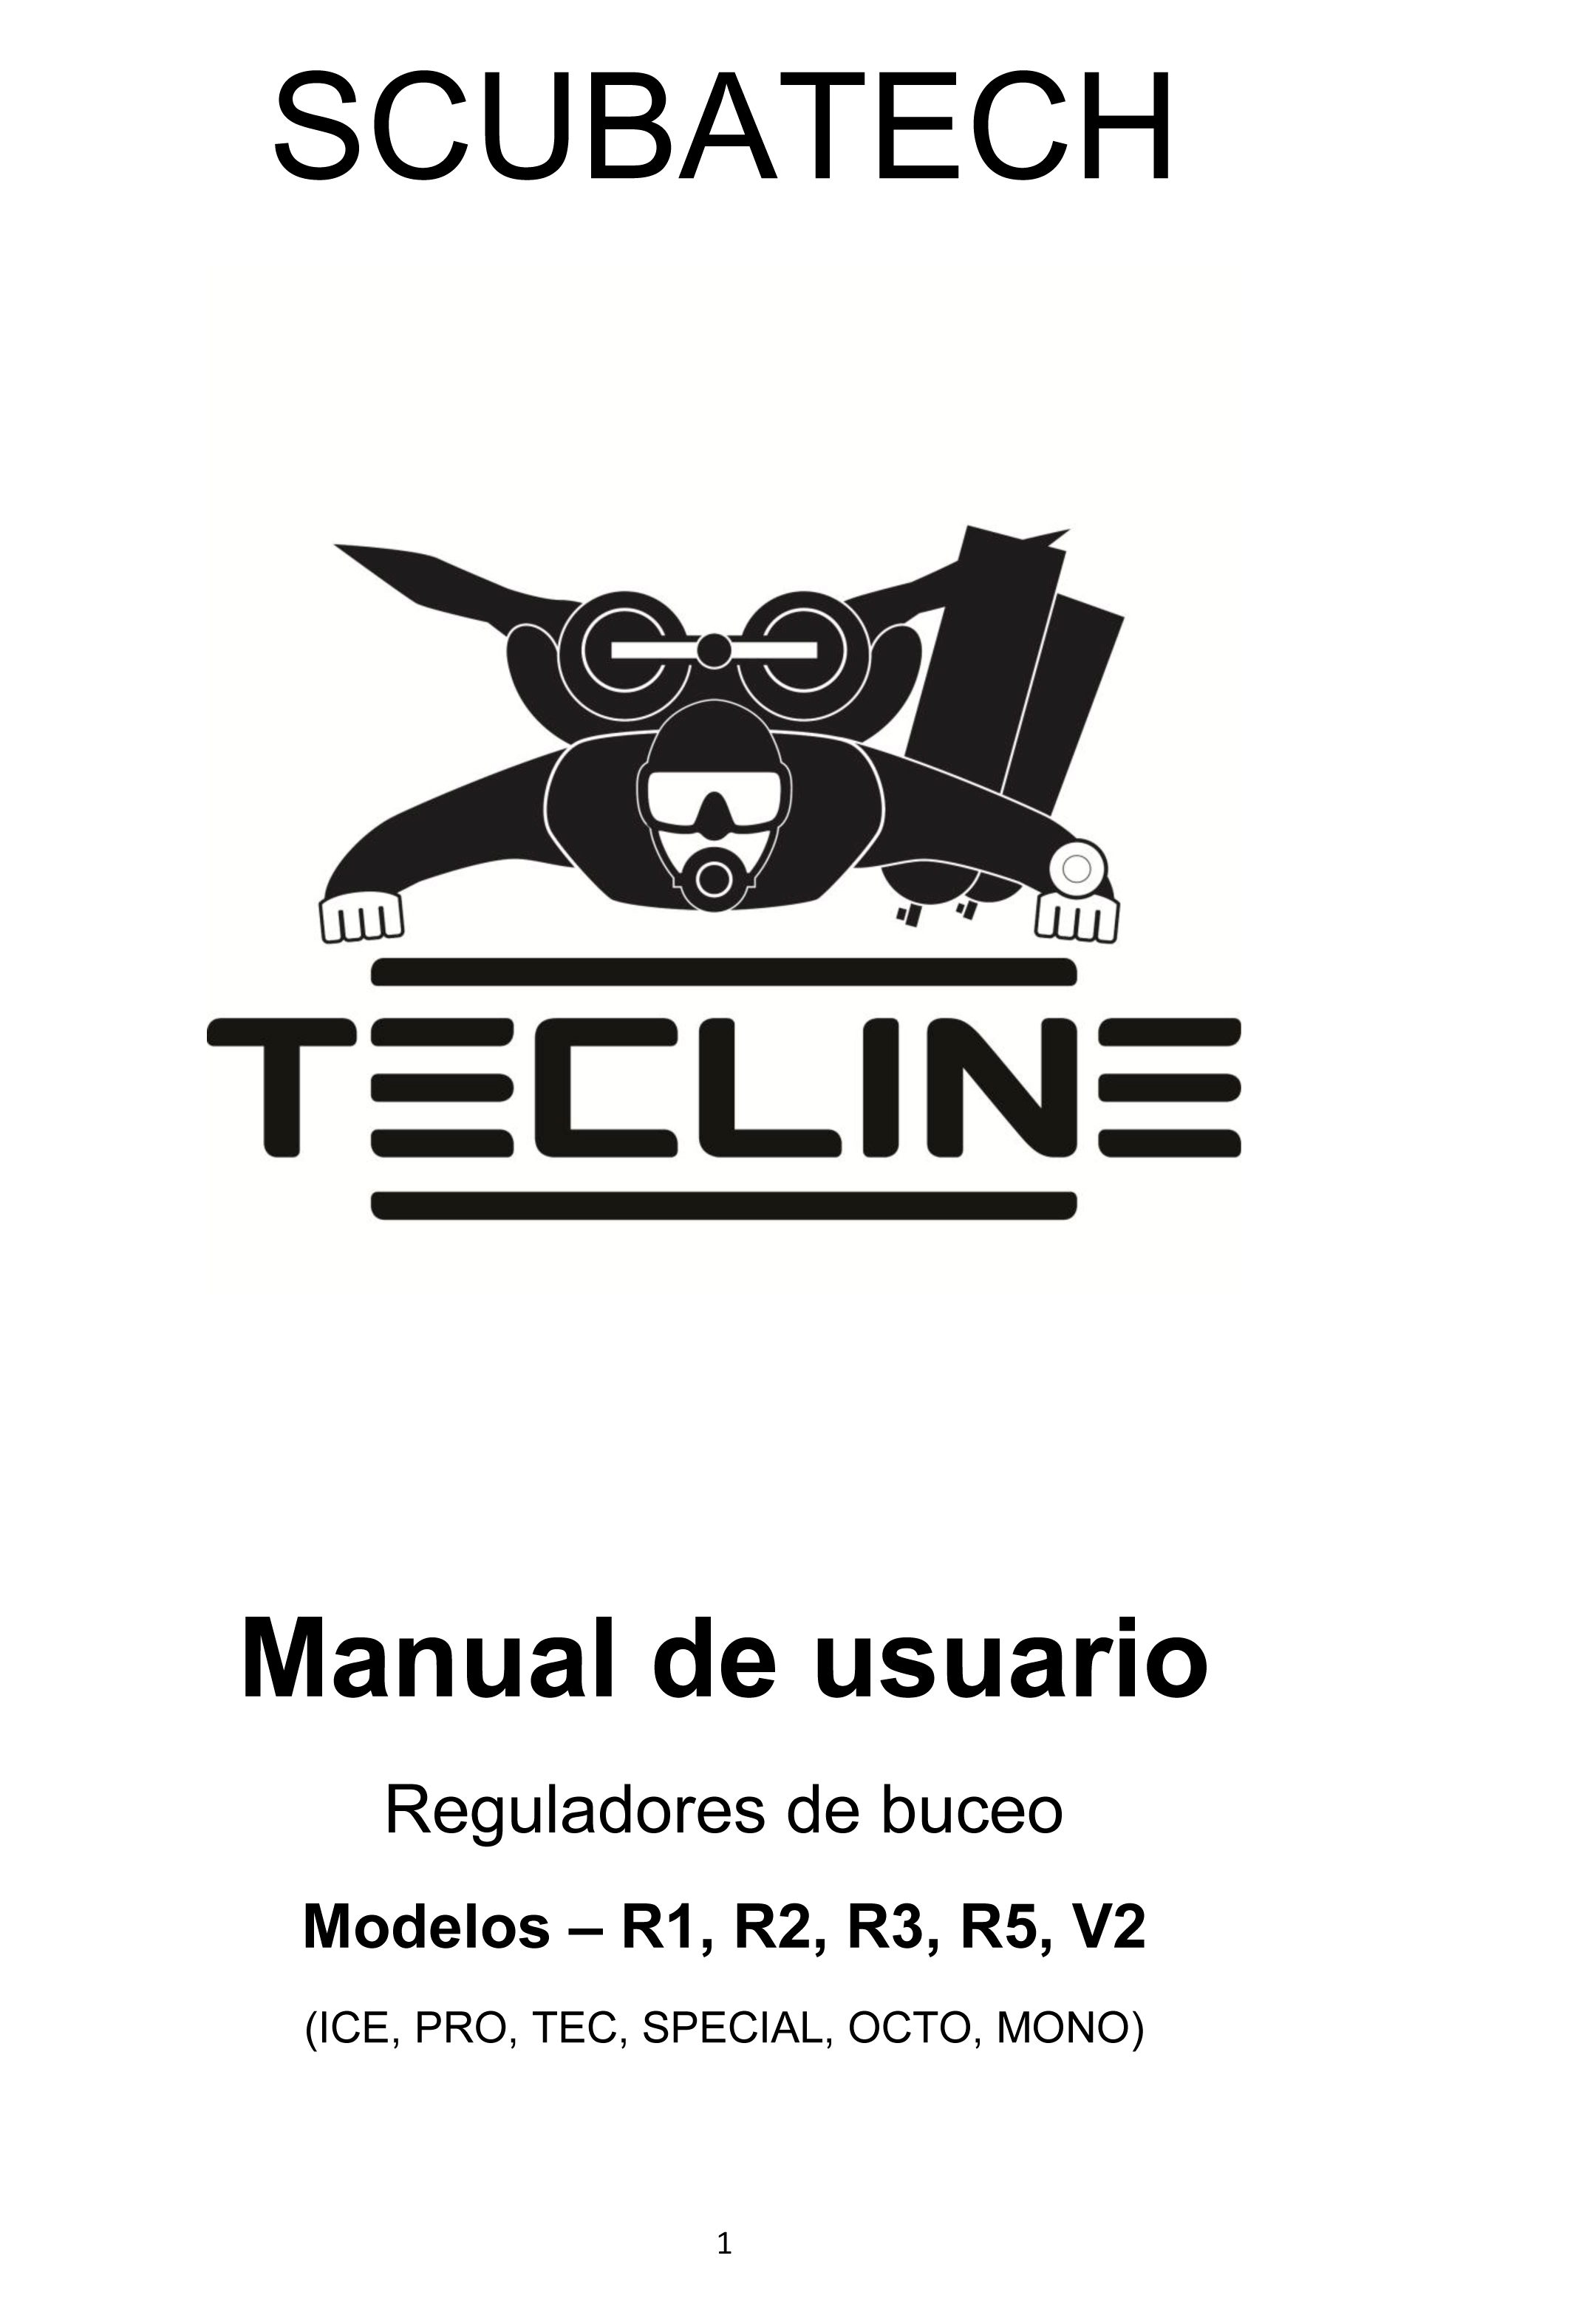 SCUBATECH-Manual-de-Usuario-Reguladores-1